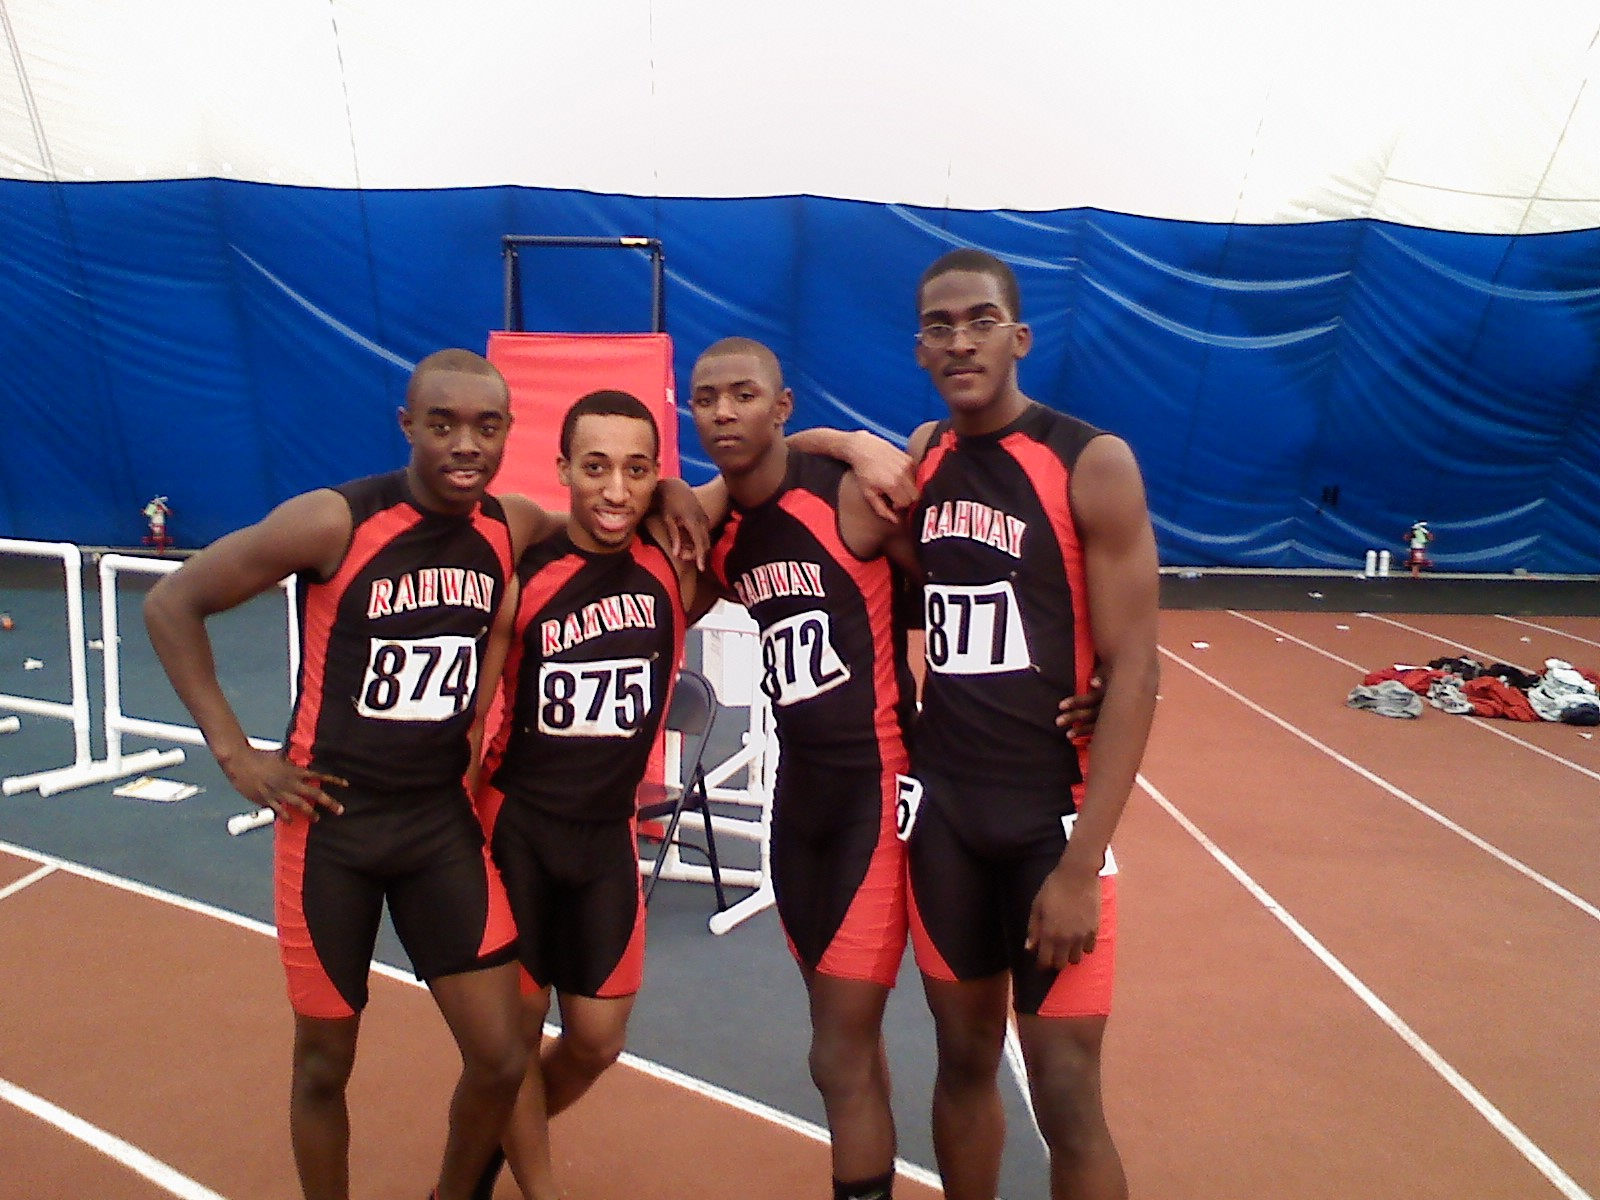 Rahway Relay Team Wins State Championship